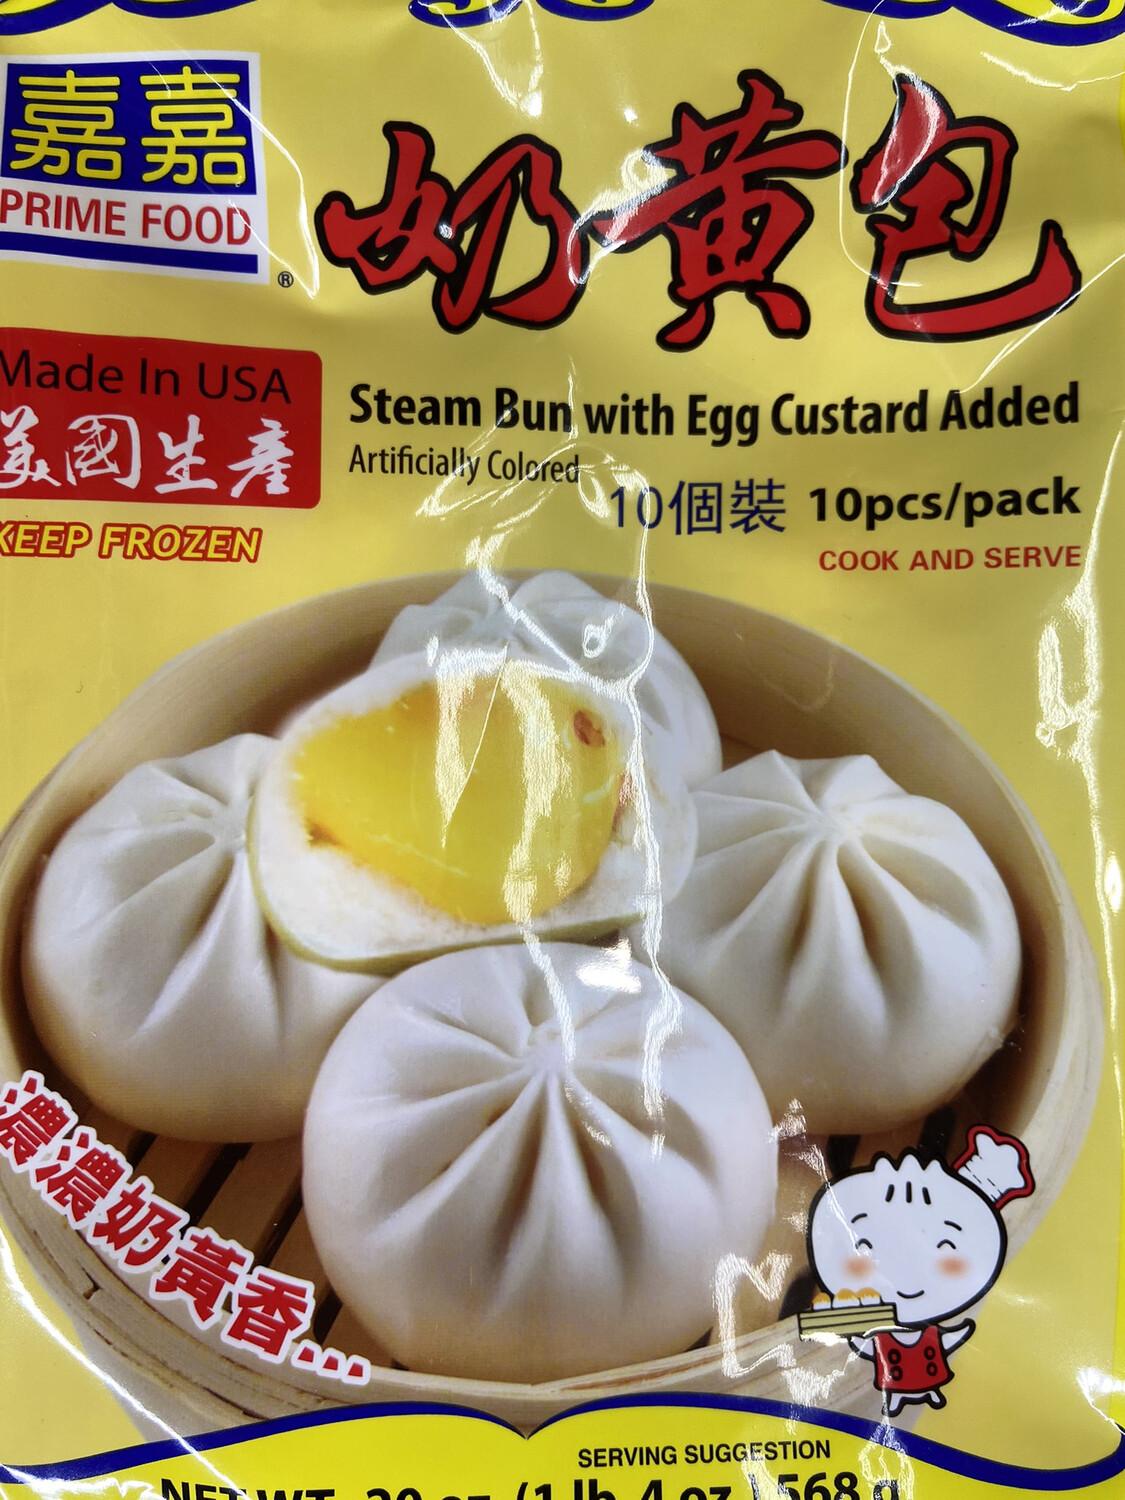 【RF】Steam Bun with Egg Custard Added 嘉嘉 奶黄包20oz(568g) 10只装